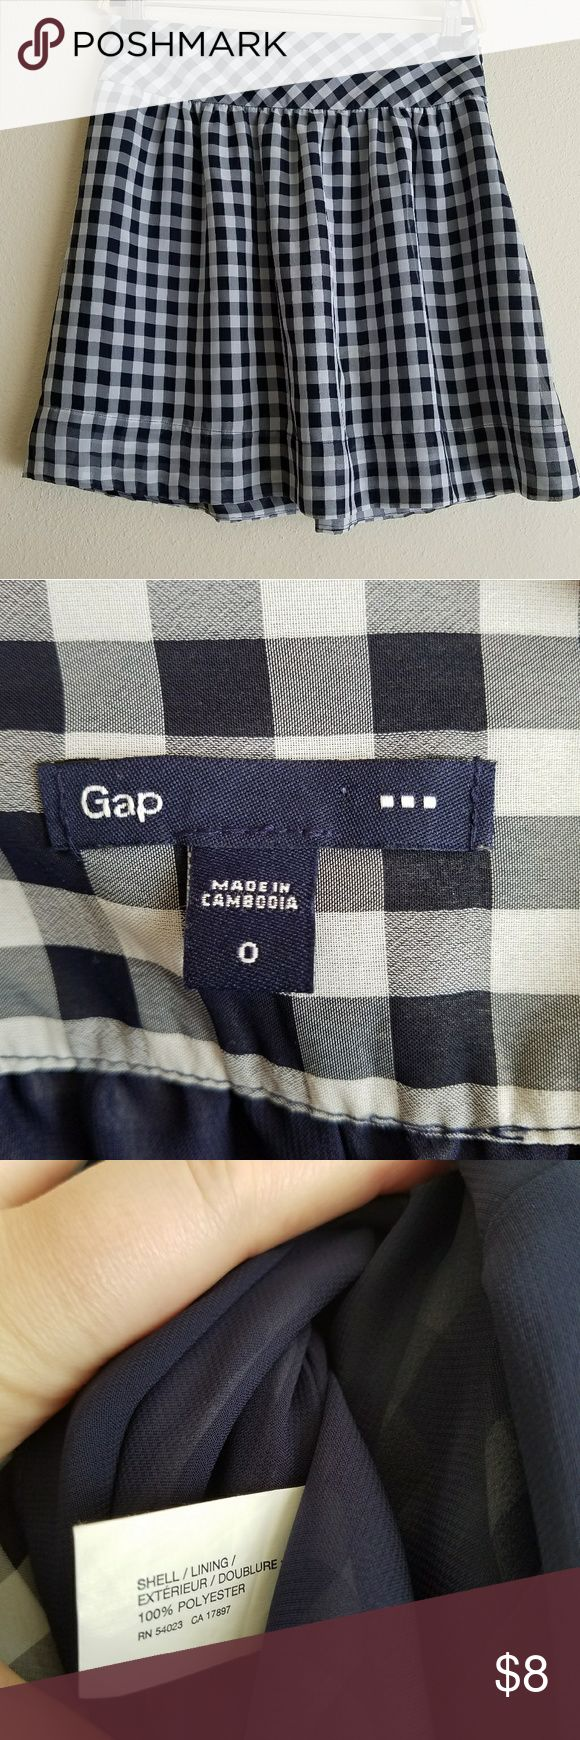 Sz 0 Mini Skirt Checkered Plaid Gap Brand: Gap Size: 0 Color: Navy blue, white Notes: Hidden side zipper lightweight swing mini skirt, checker board plaid pattern Condition: In very good used condition GAP Skirts Mini